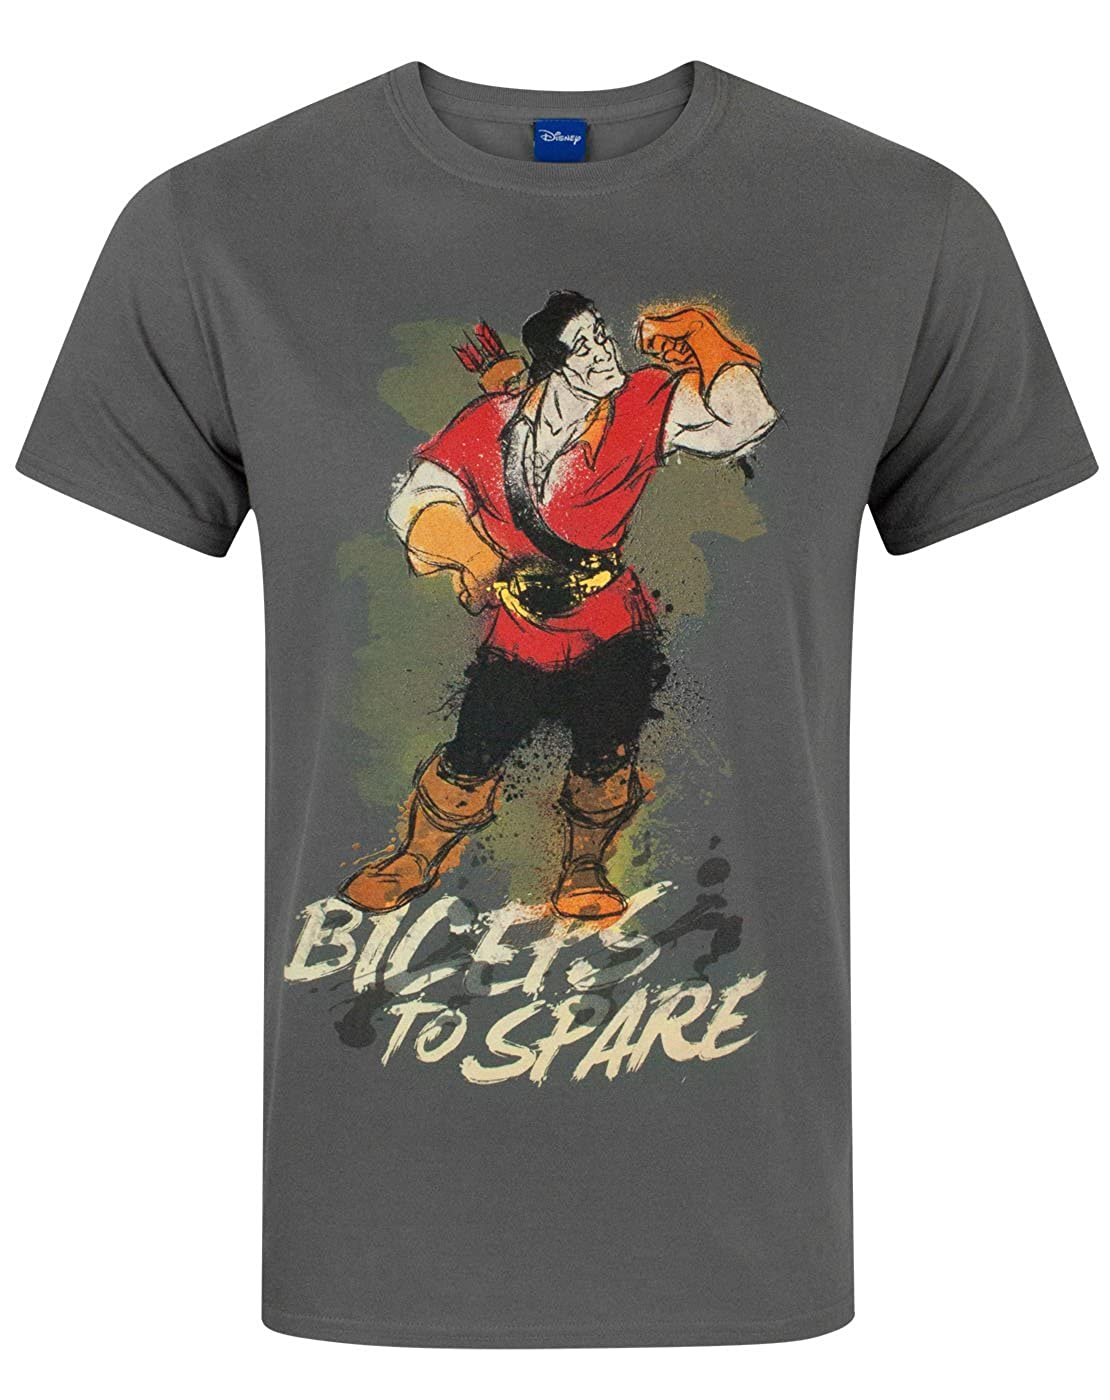 0bae80eb1d6 Amazon.com  Disney Beauty and The Beast Gaston Men s T-Shirt Charcoal   Clothing